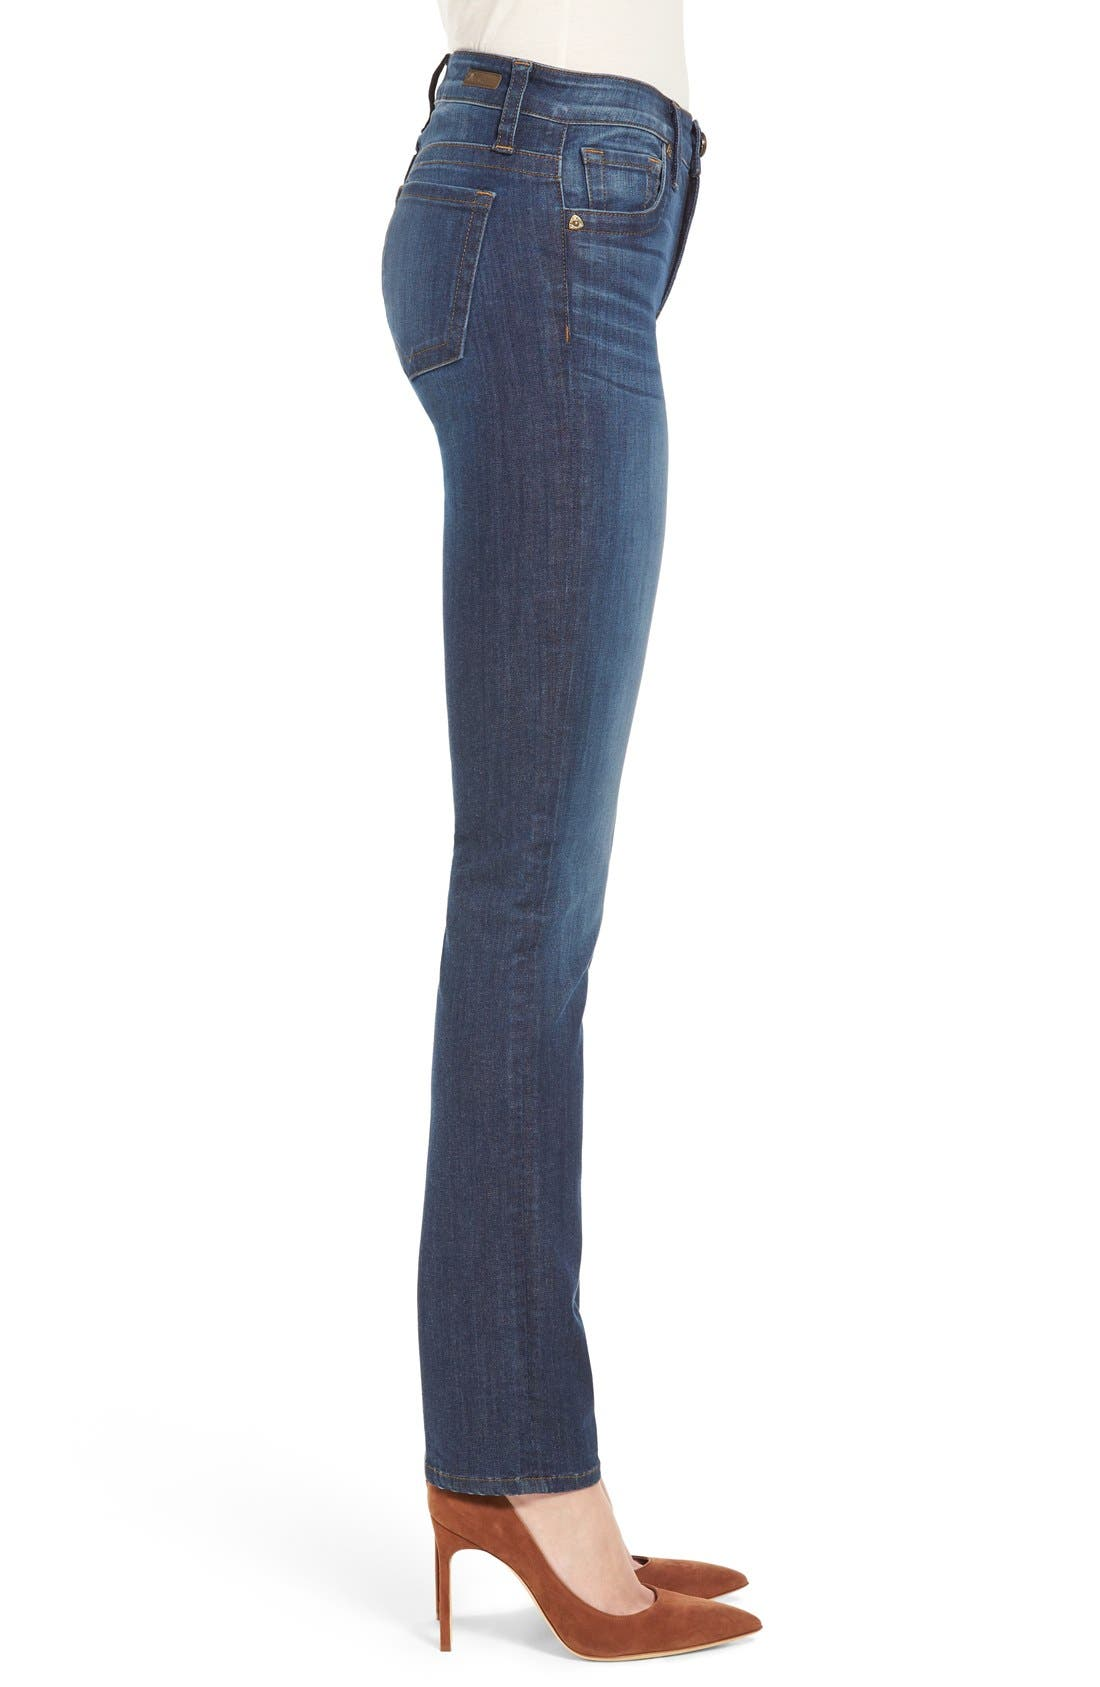 Alternate Image 3  - KUT from the Kloth 'Stevie' Stretch Straight Leg Jeans (Admiration)